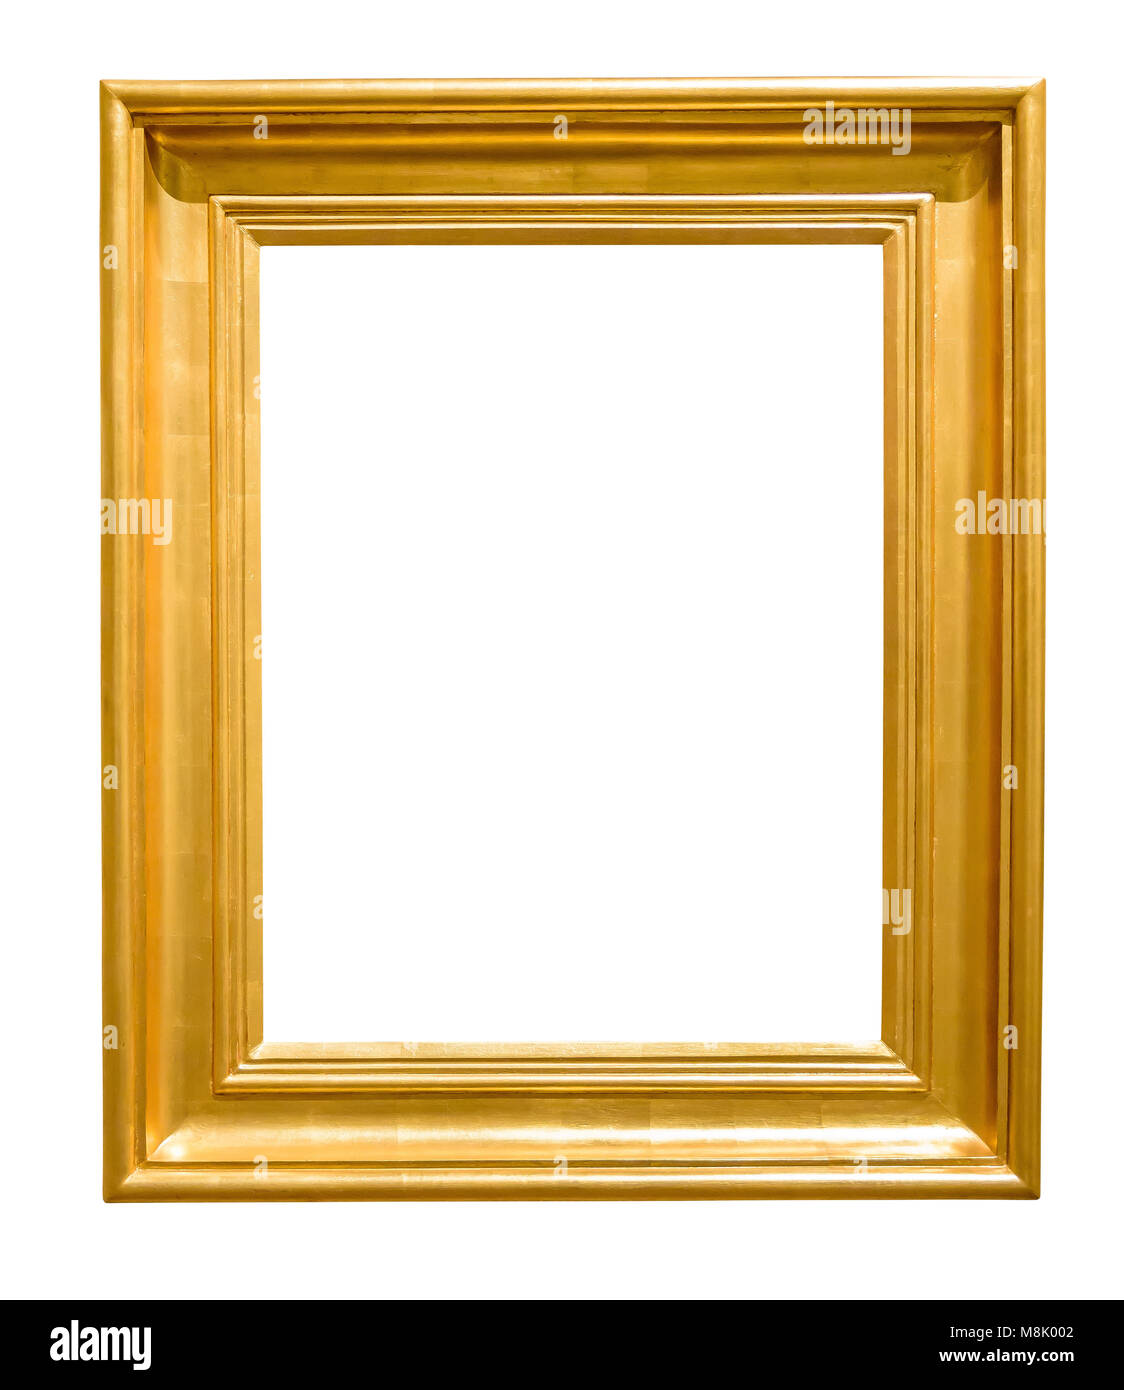 Golden decorative picture frame isolated on white background with clipping path Stock Photo